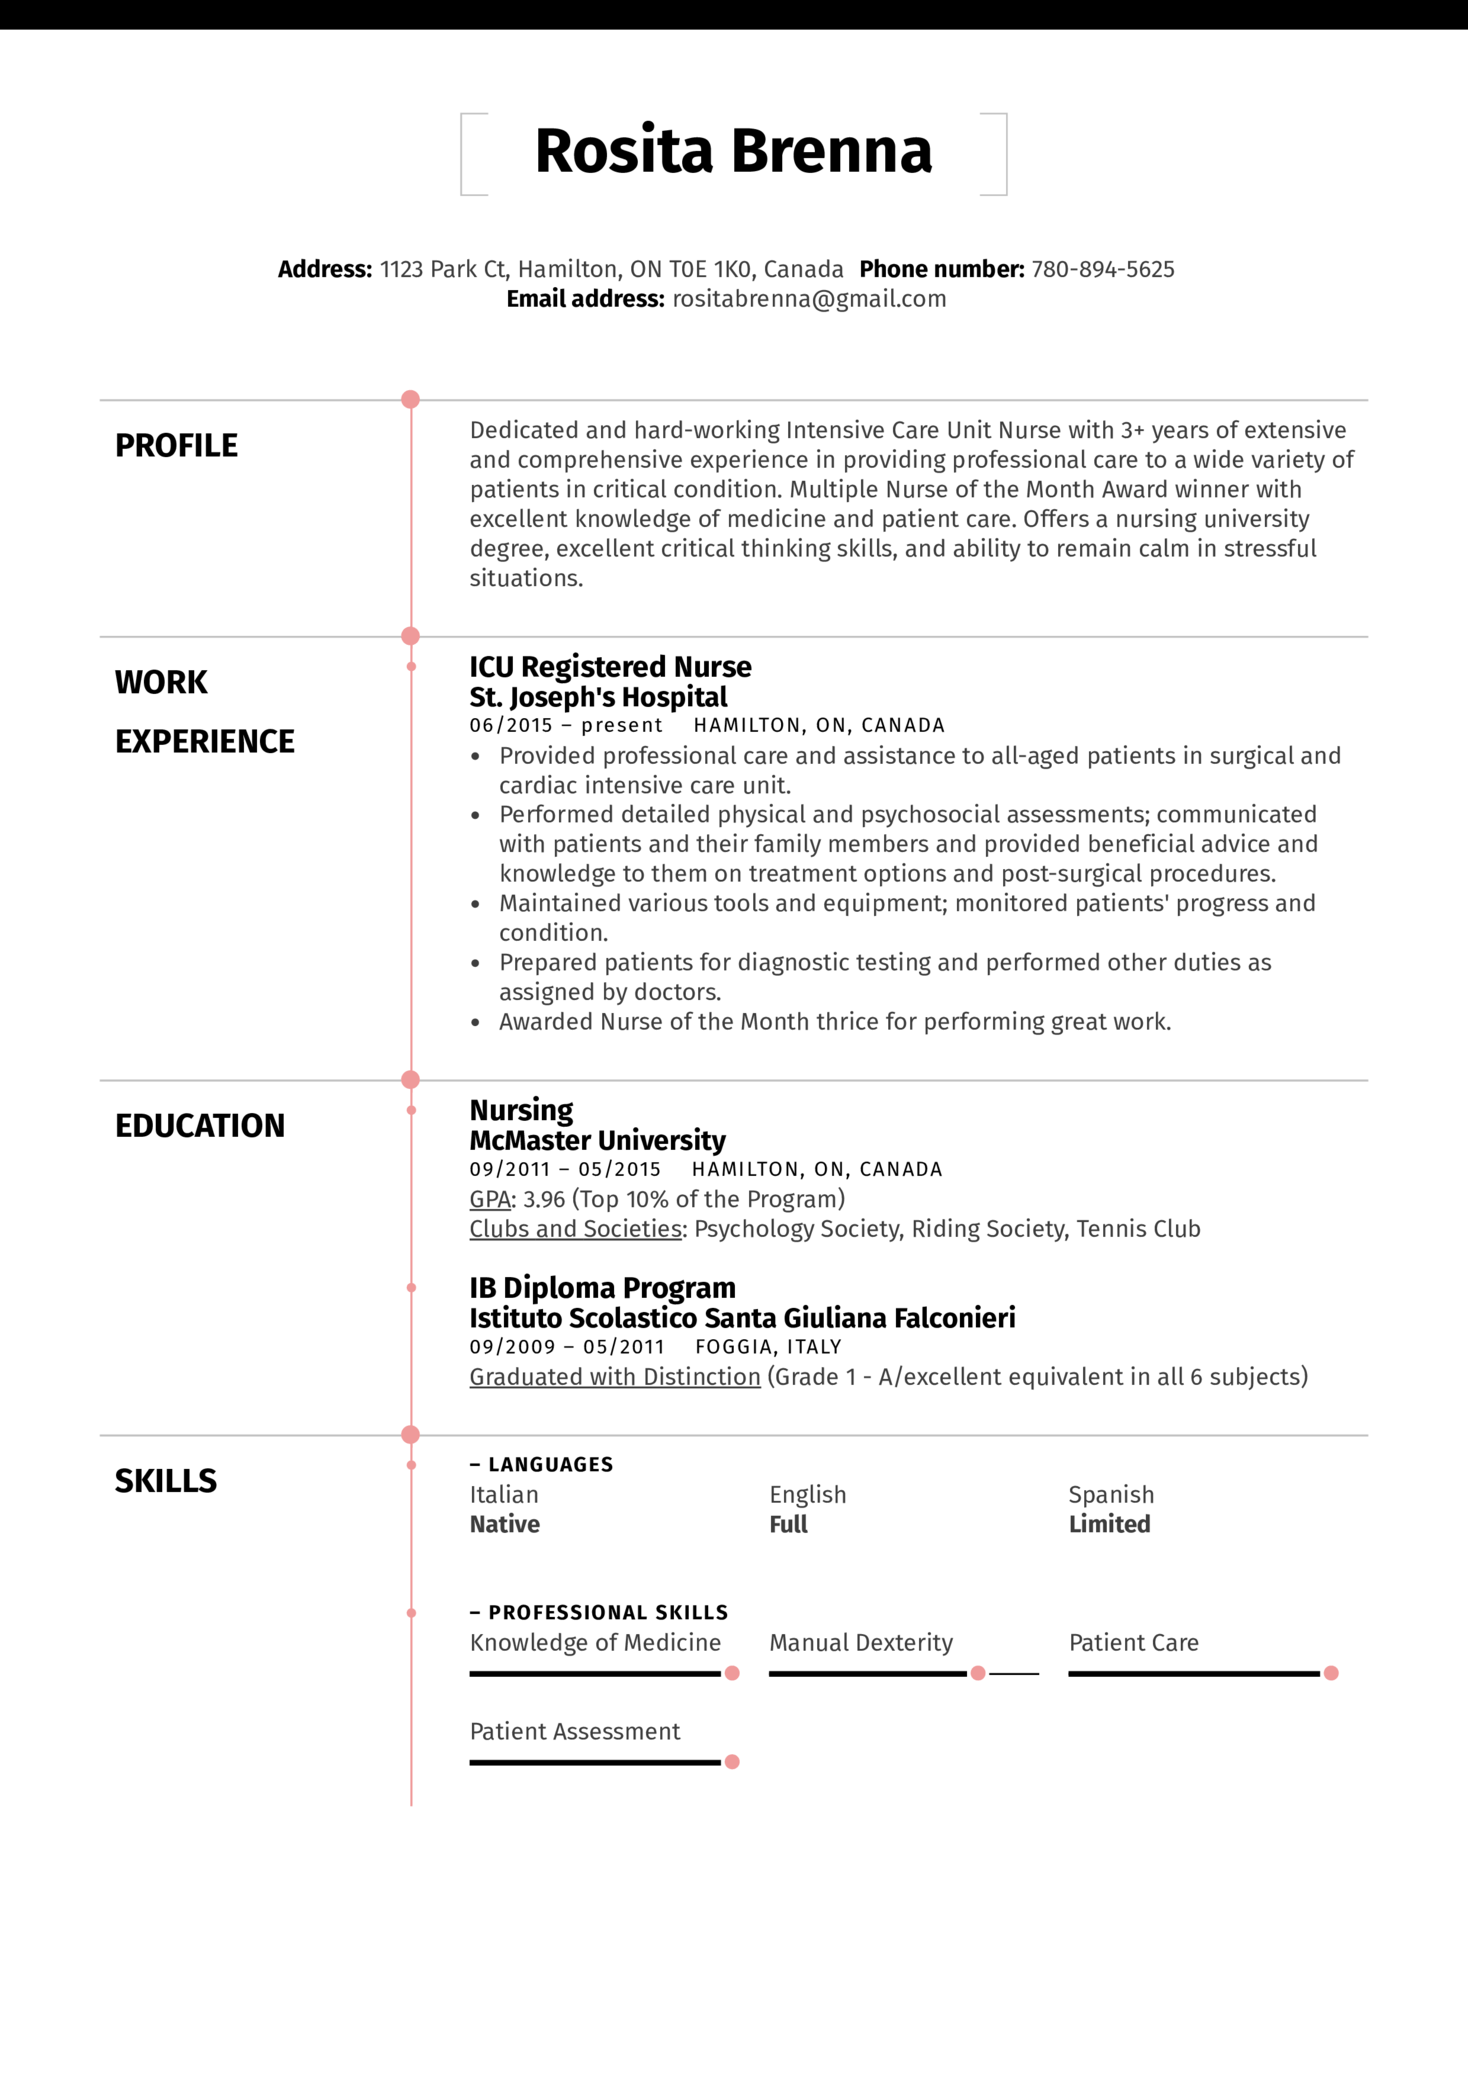 ICU Registered Nurse Resume Example